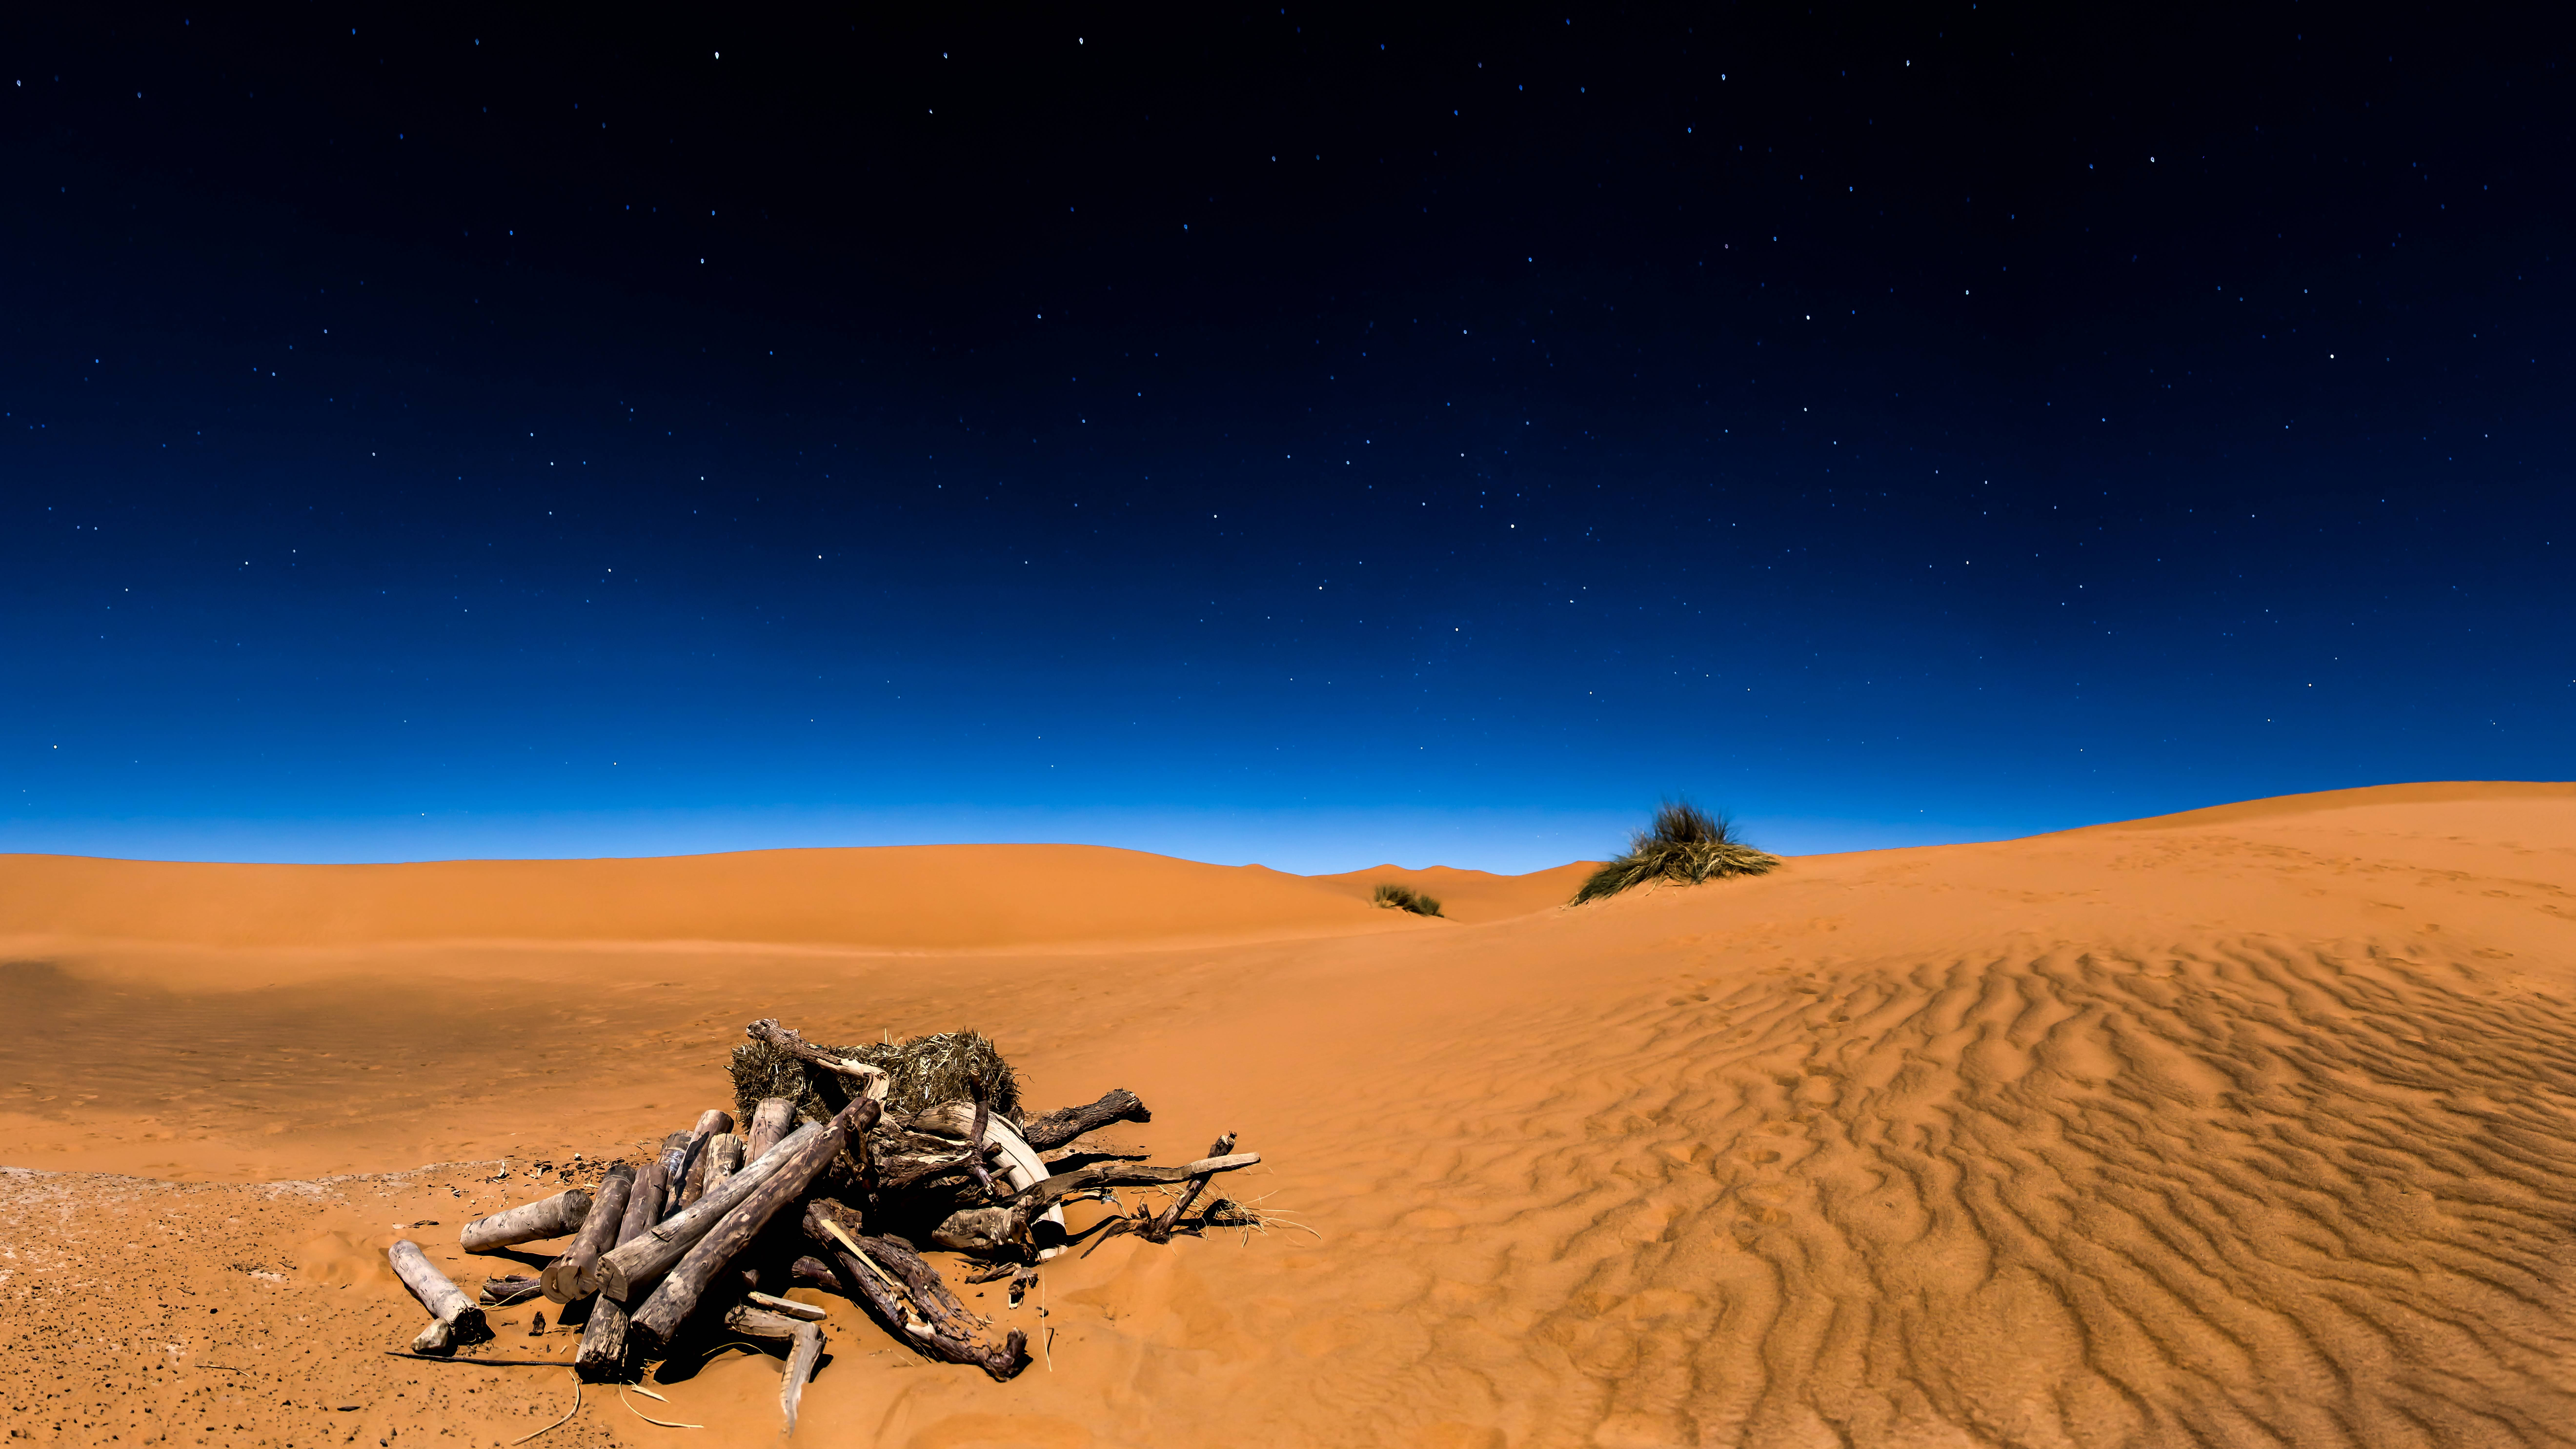 Night in the Sahara Desert wallpaper